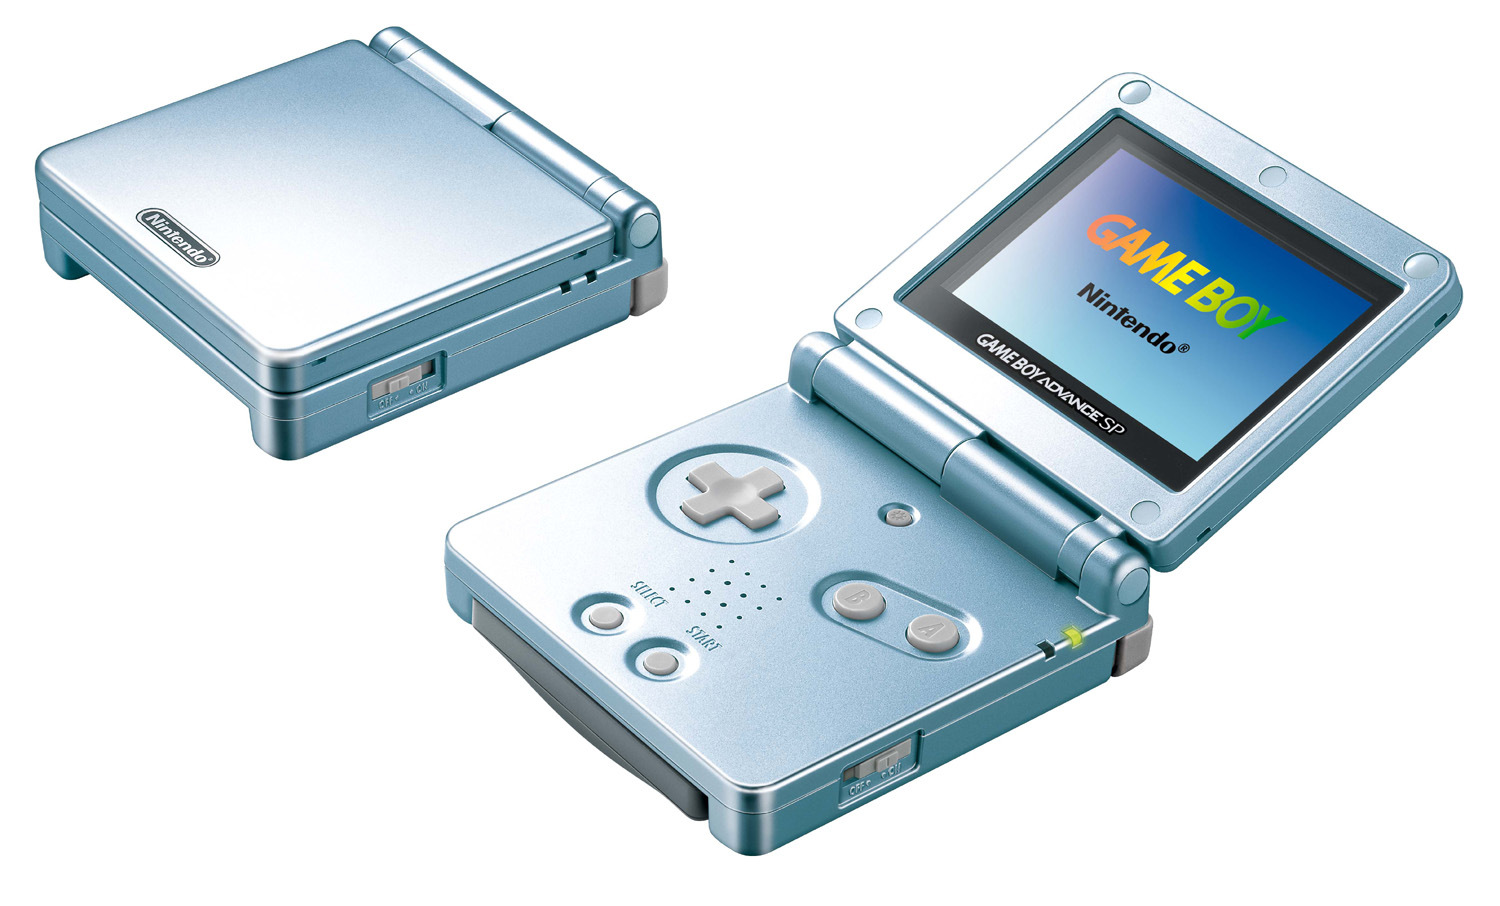 Model terbaru dari Game Boy Advance, Game Boy Advance SP.